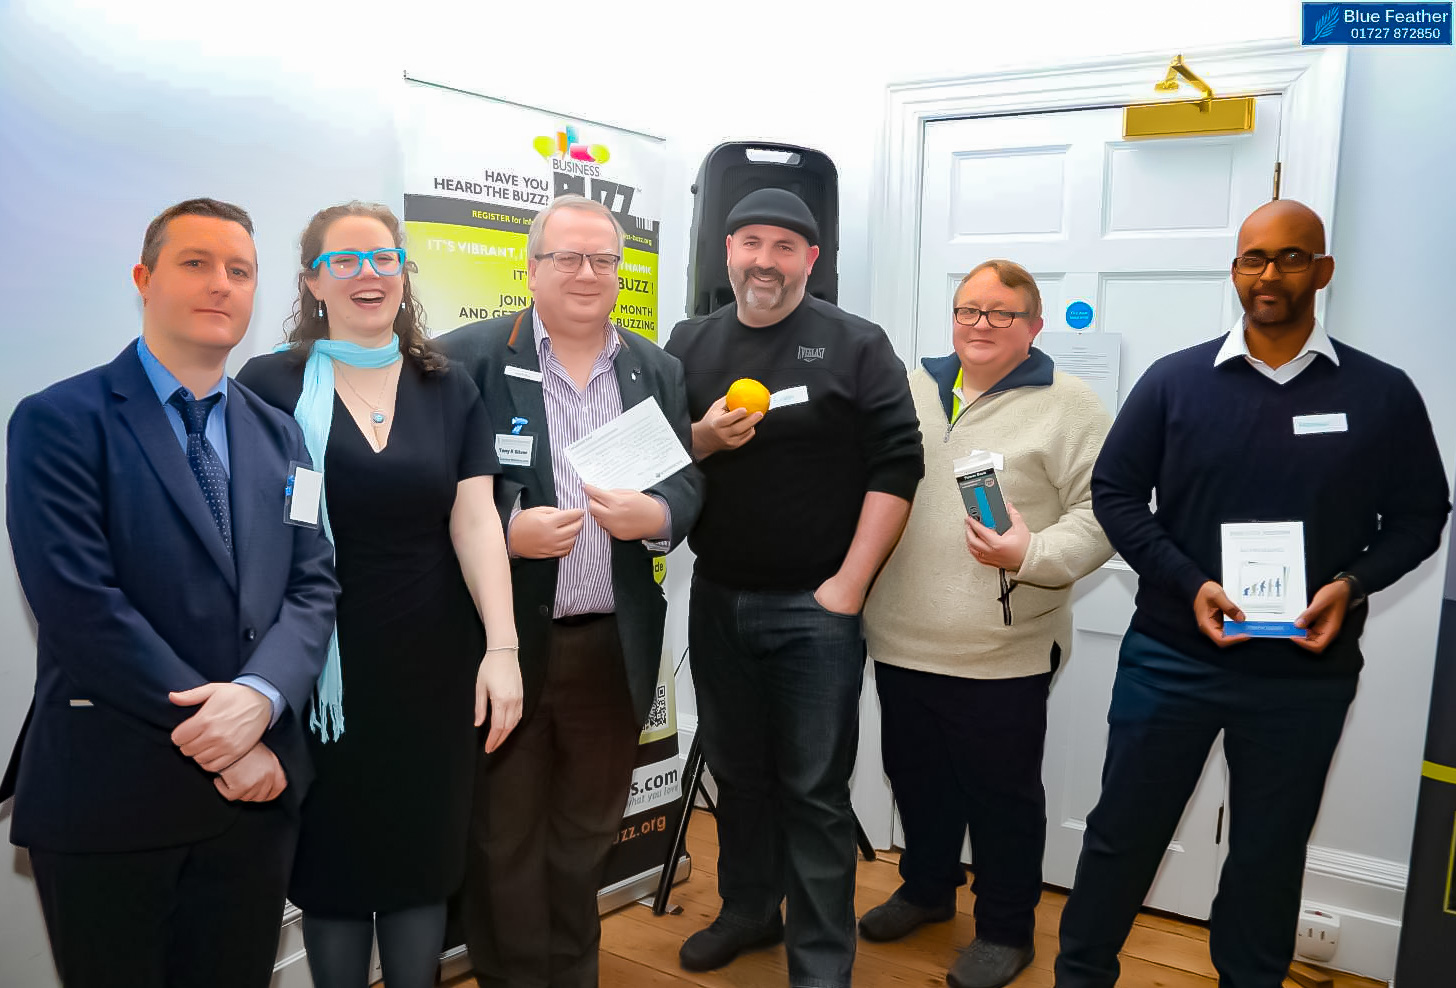 Prize winners at Business Success Matters event, St Albans